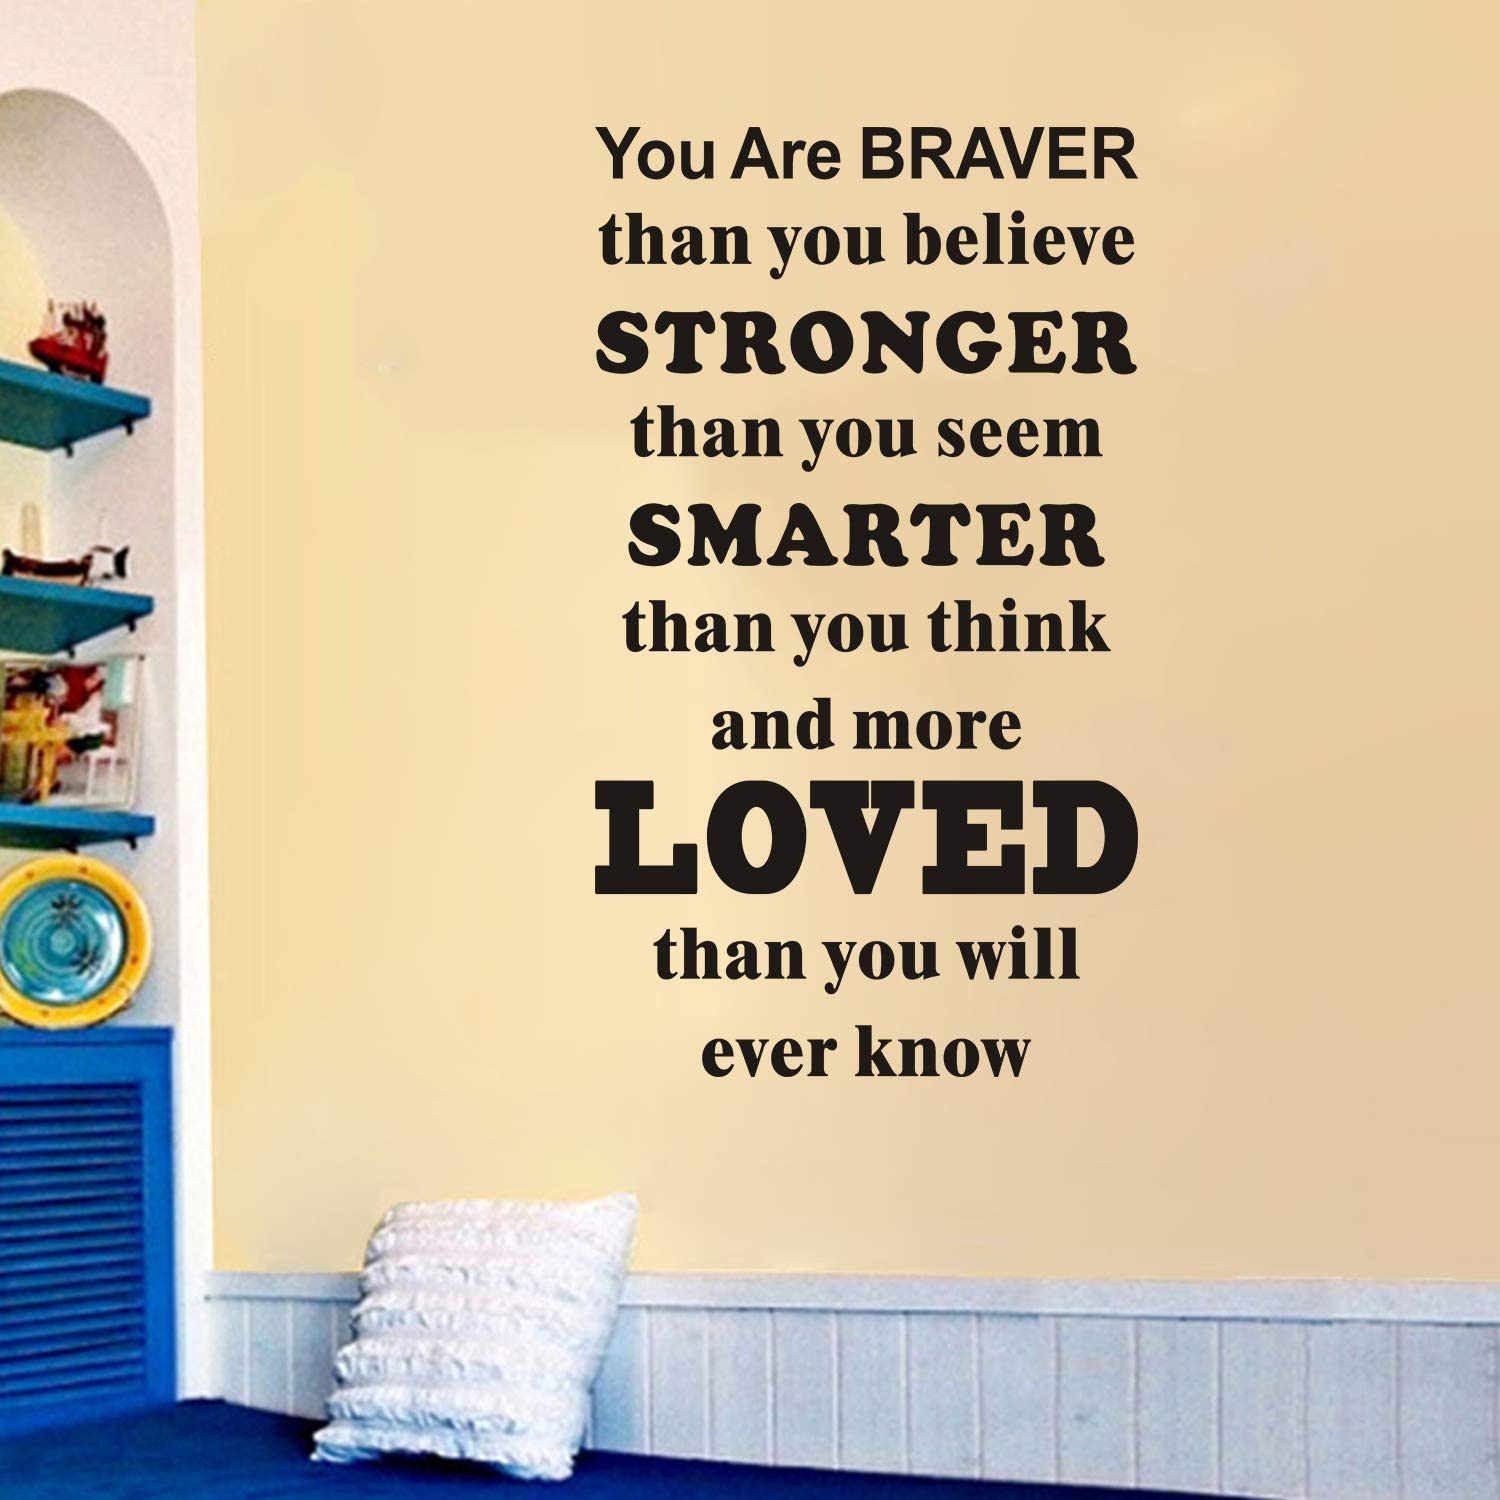 """VODOE Playroom Wall Decals, Quotes Wall Decal, Living Room Bedroom Classroom Nursery Baby Boys Girls Teen Kids Inspirational Vinyl Art Home Decor Stickers You are Braver Than You Believe 16""""x28"""""""